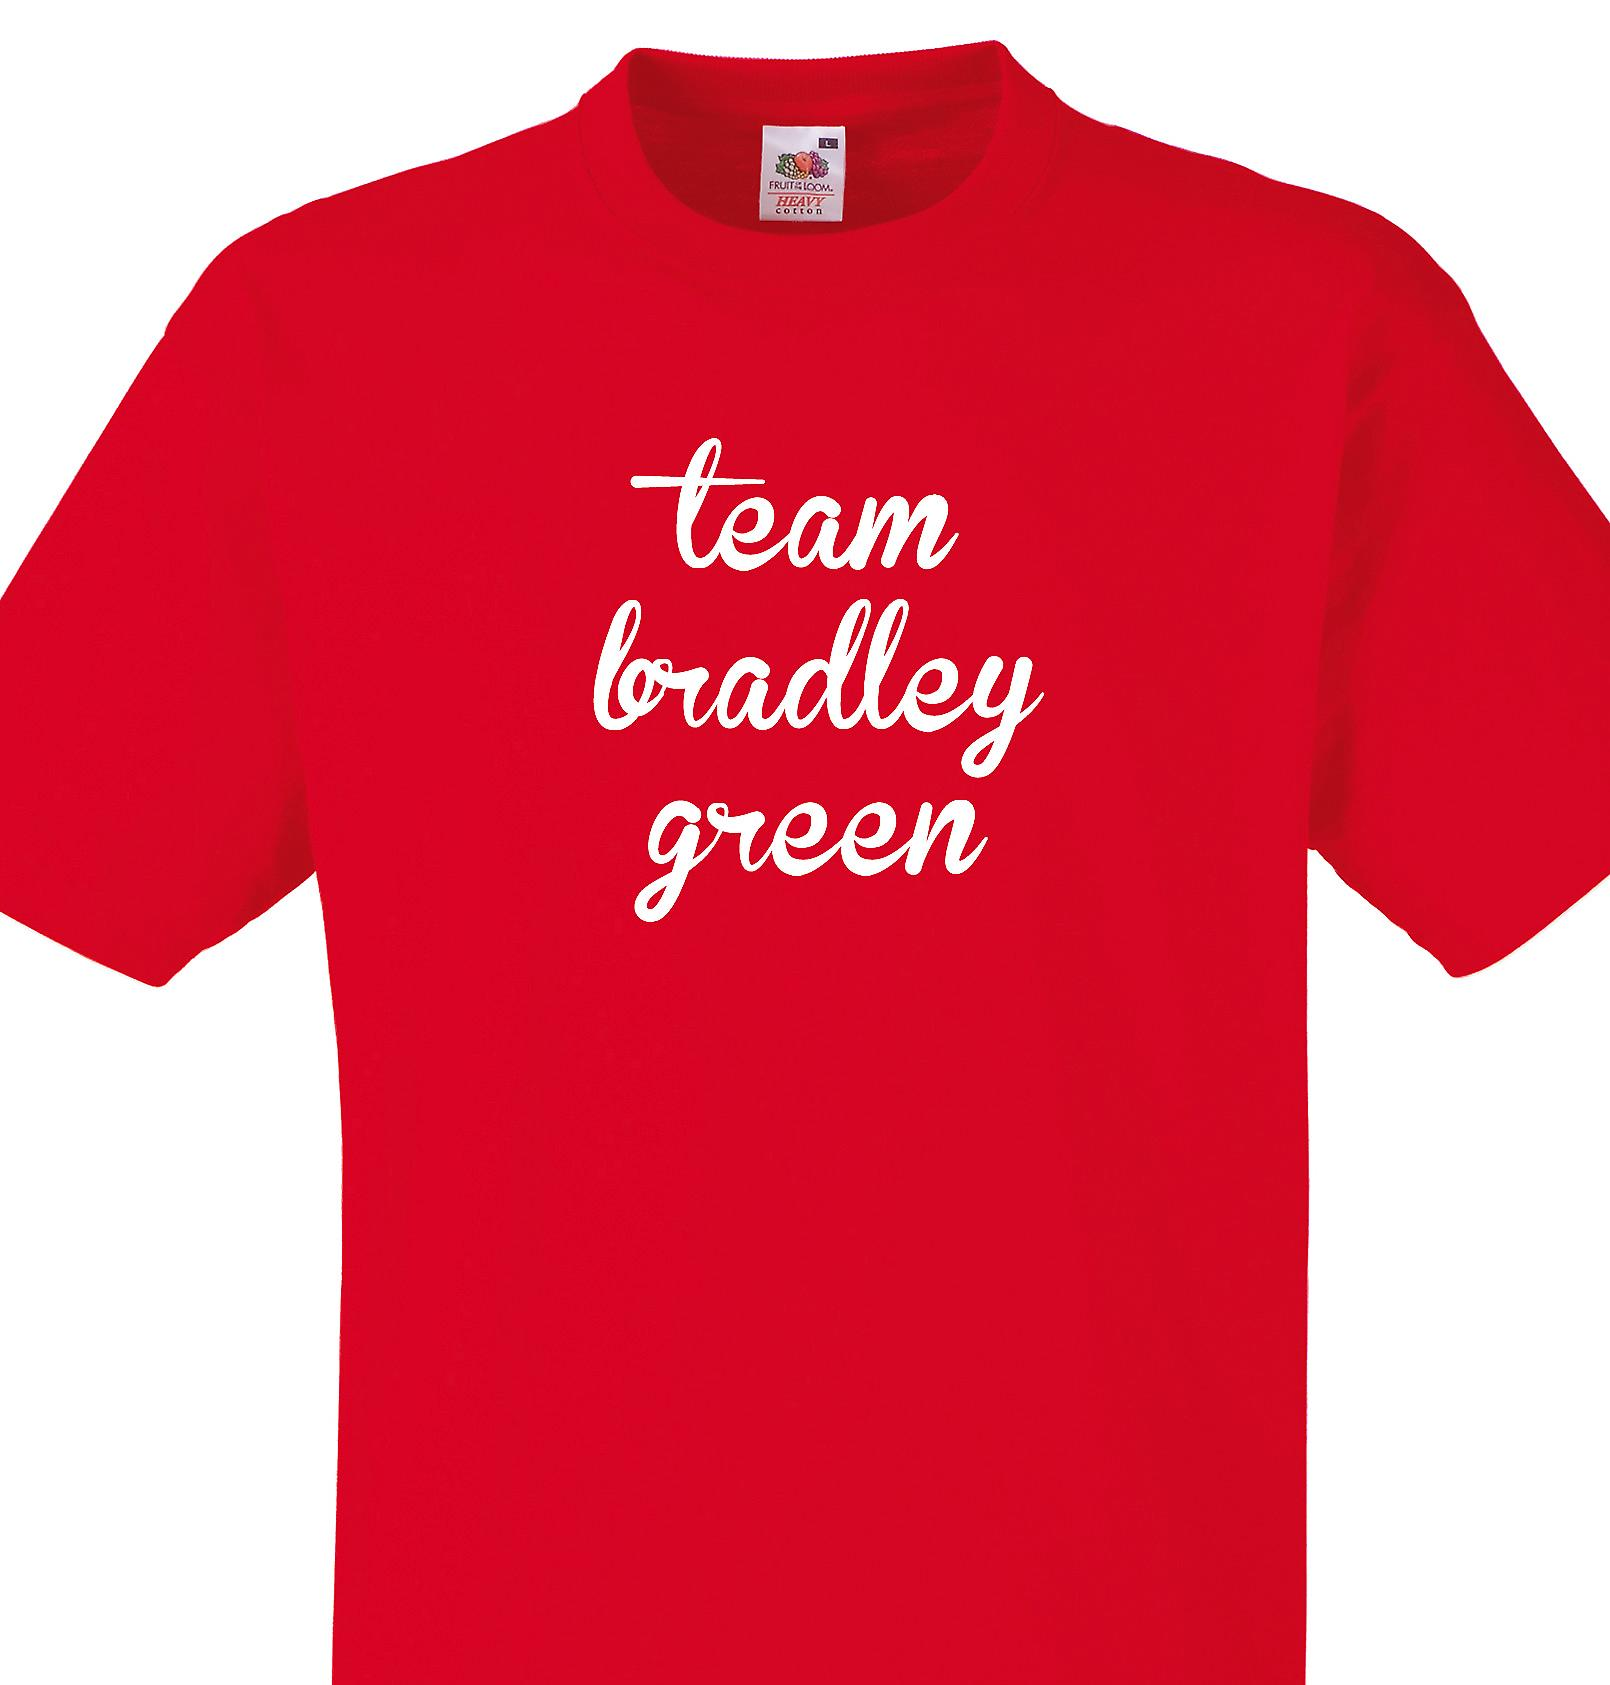 Team Bradley green Red T shirt